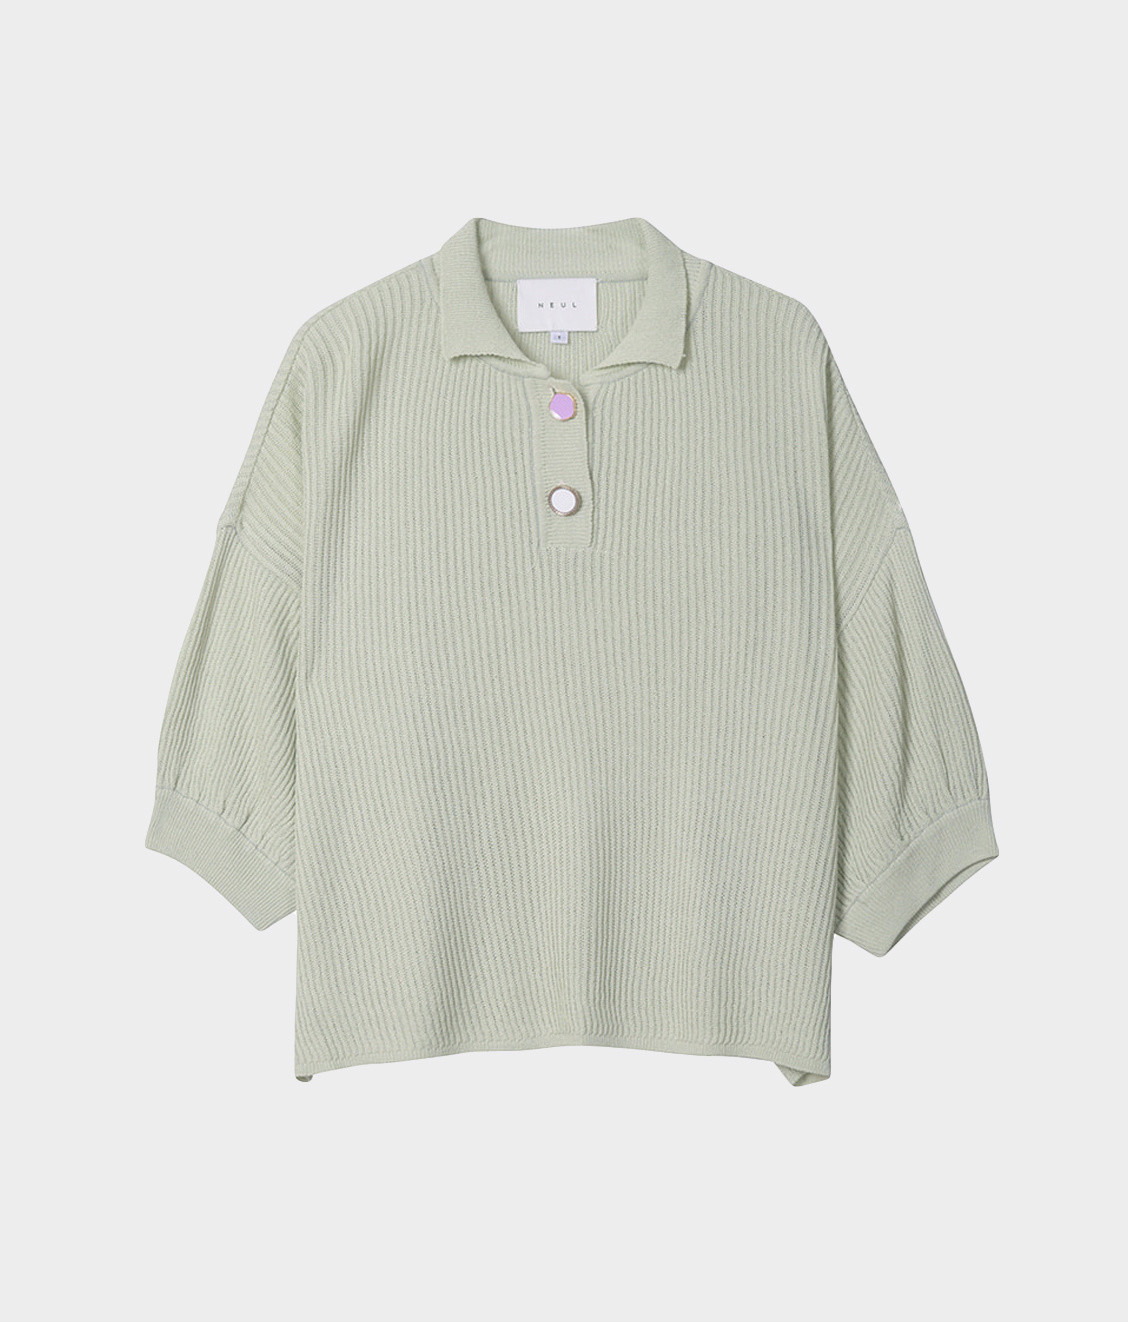 NEUL Neul Button Detail Pullover Knit Lime Cream